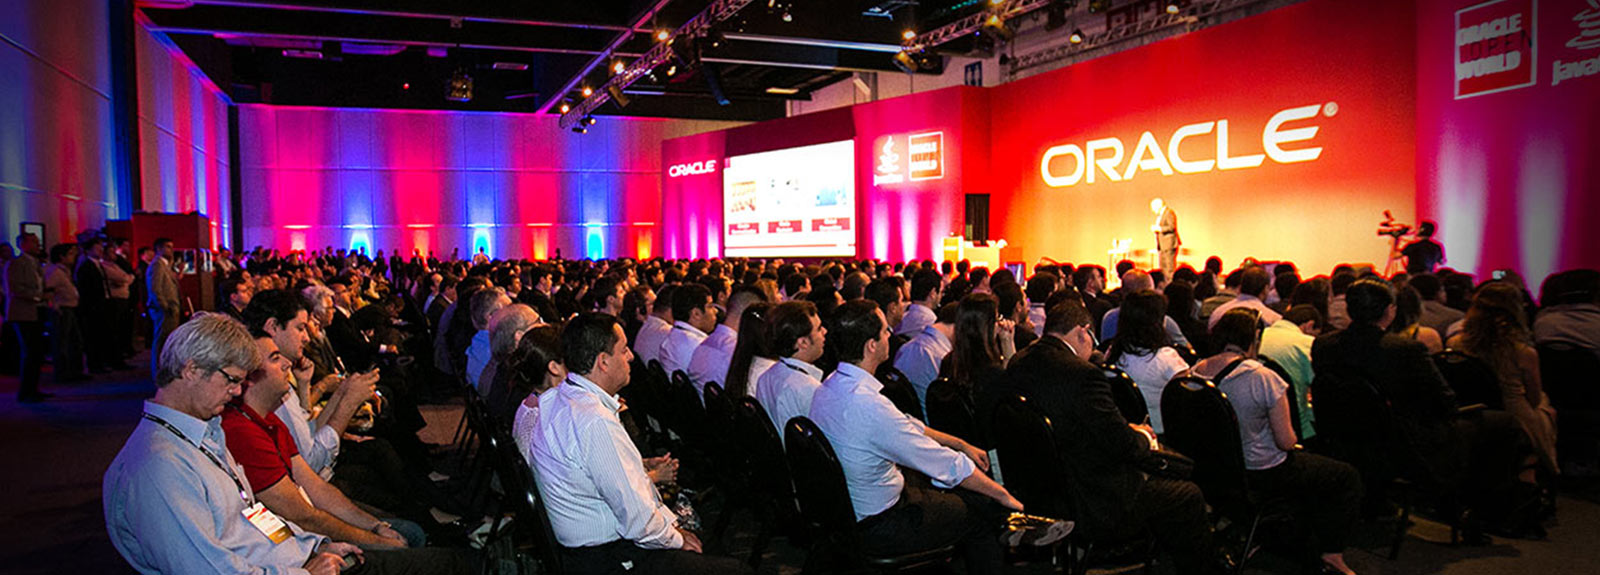 Oracle OpenWorld 2015: Finally a realVision and Mission. A pleasant surprise